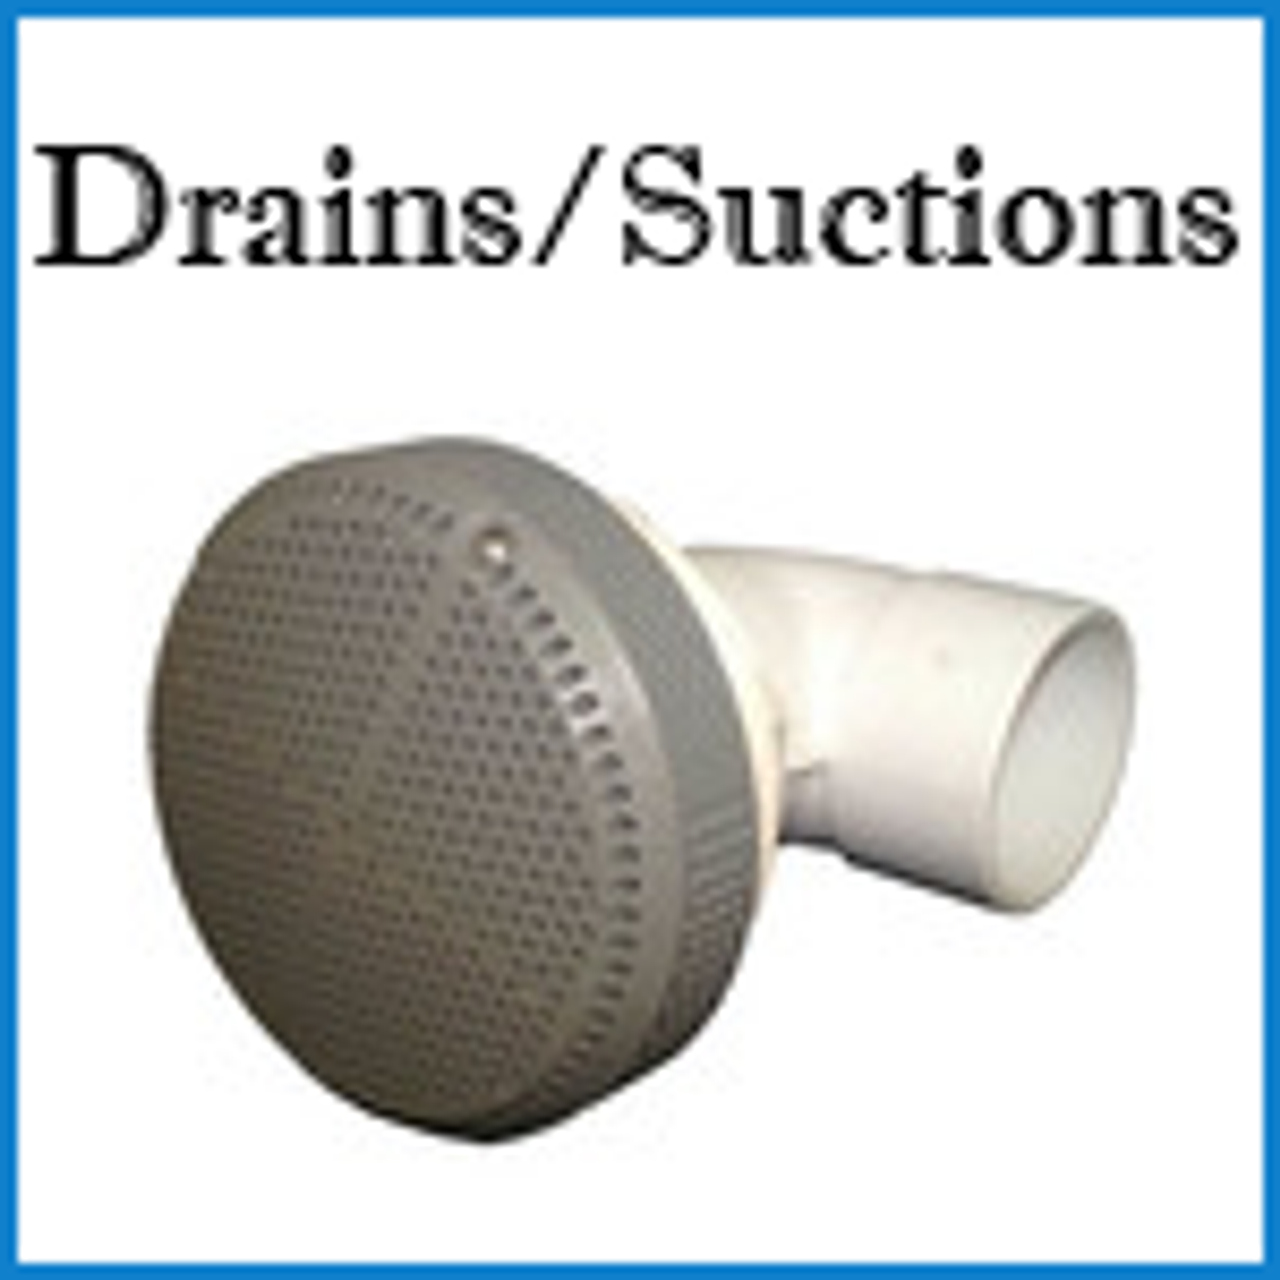 Dynasty Suctions Drains